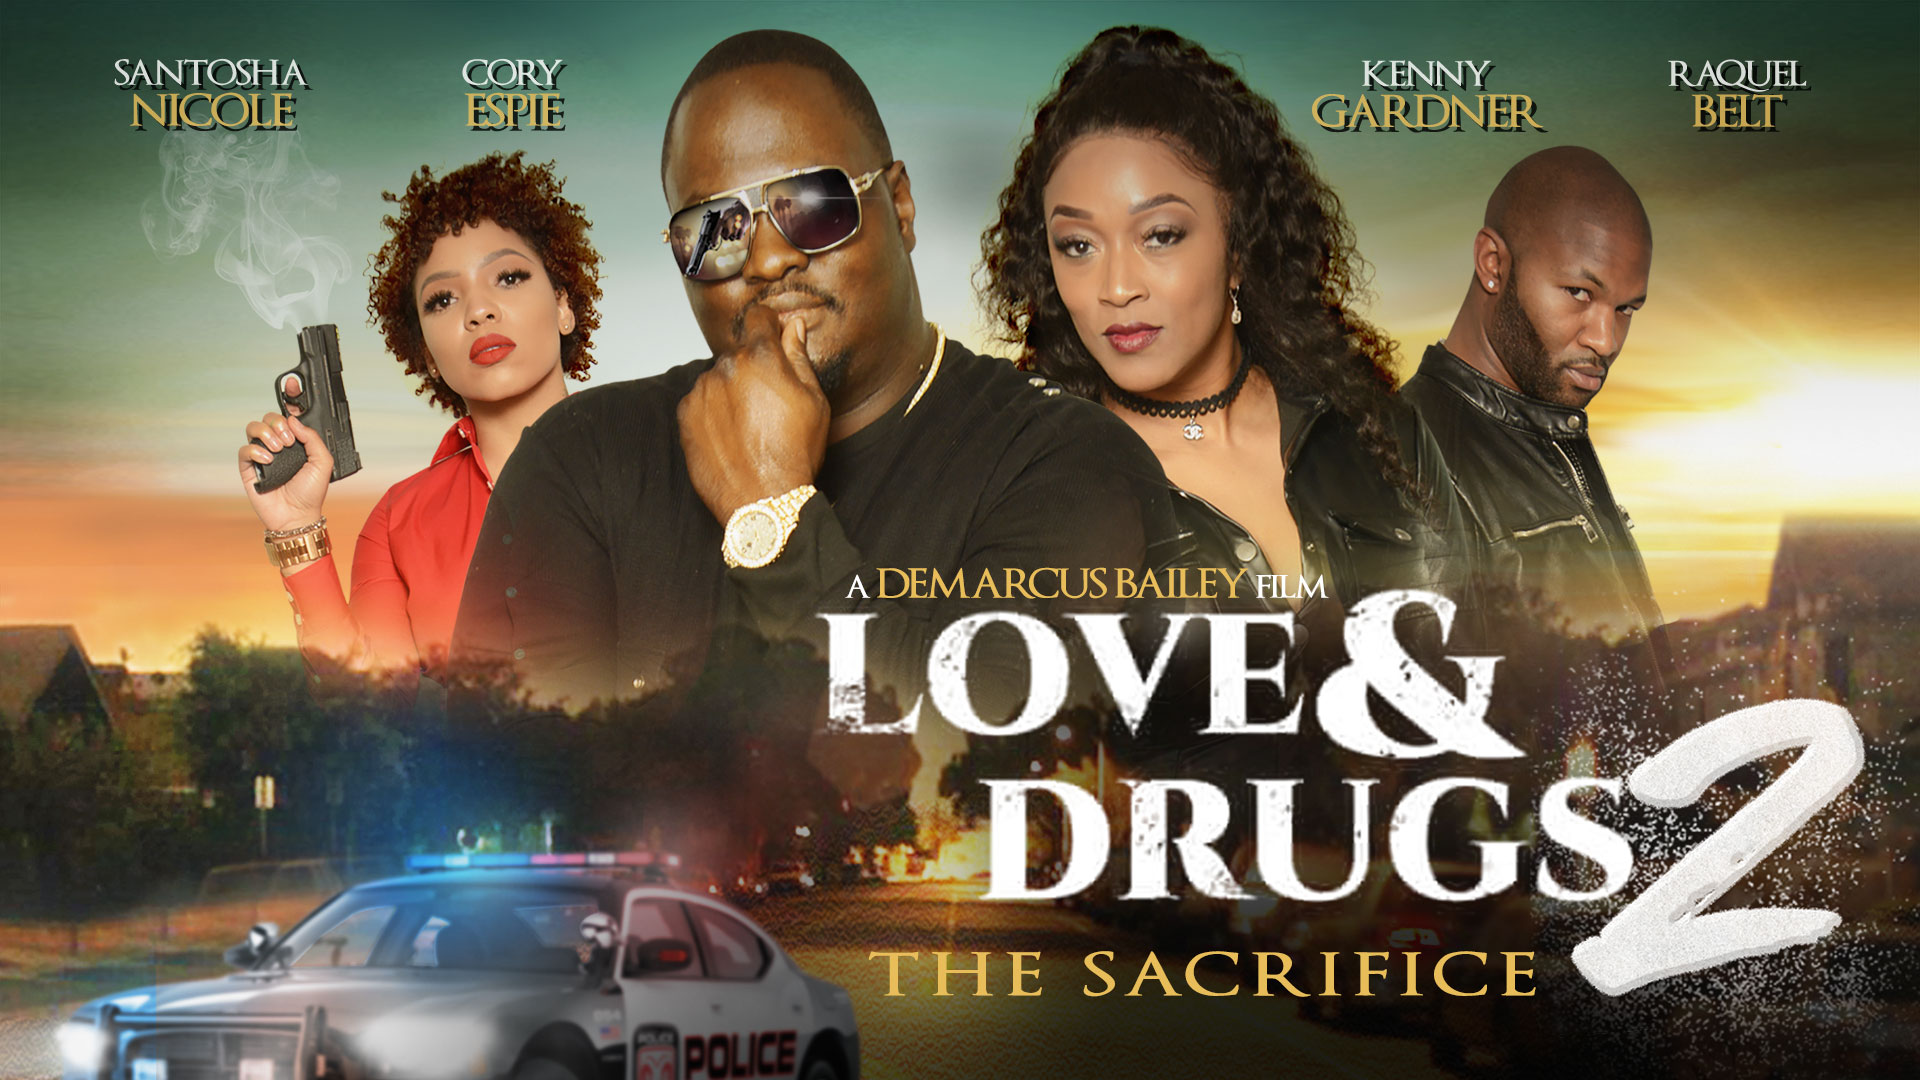 And drugs love movie Love &